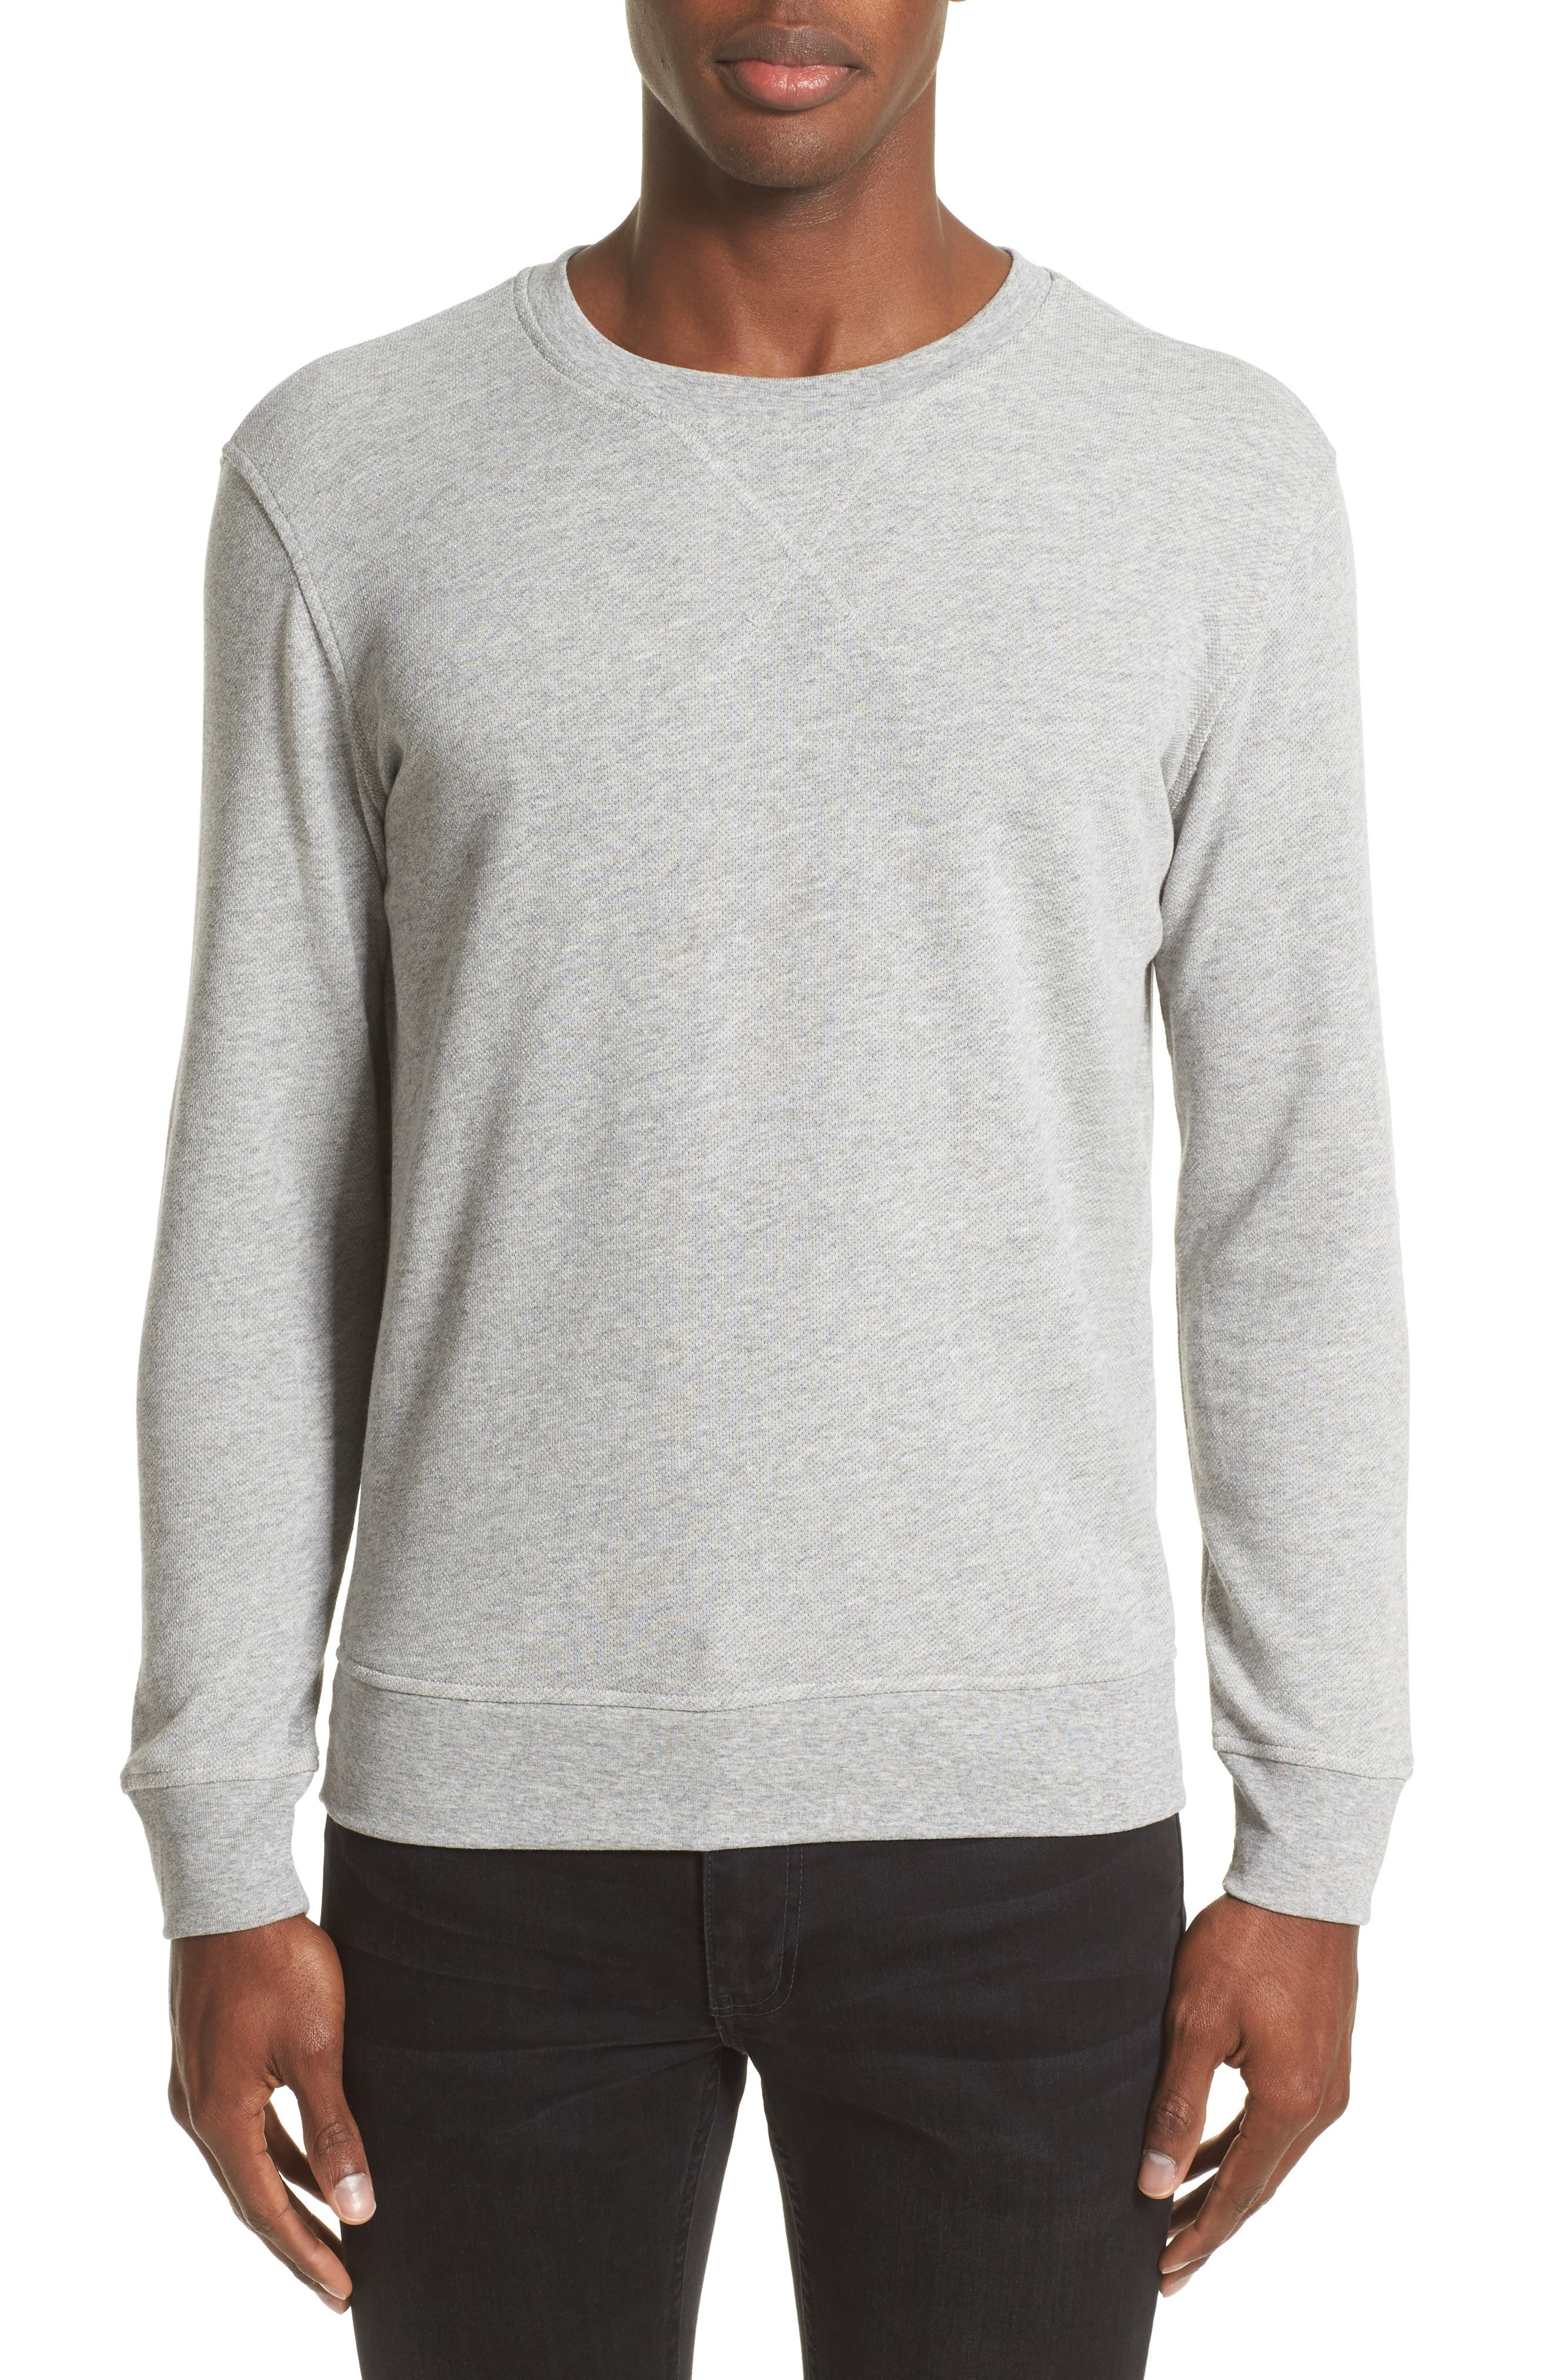 French Terry Sweatshirt,                         Main,                         color, 050